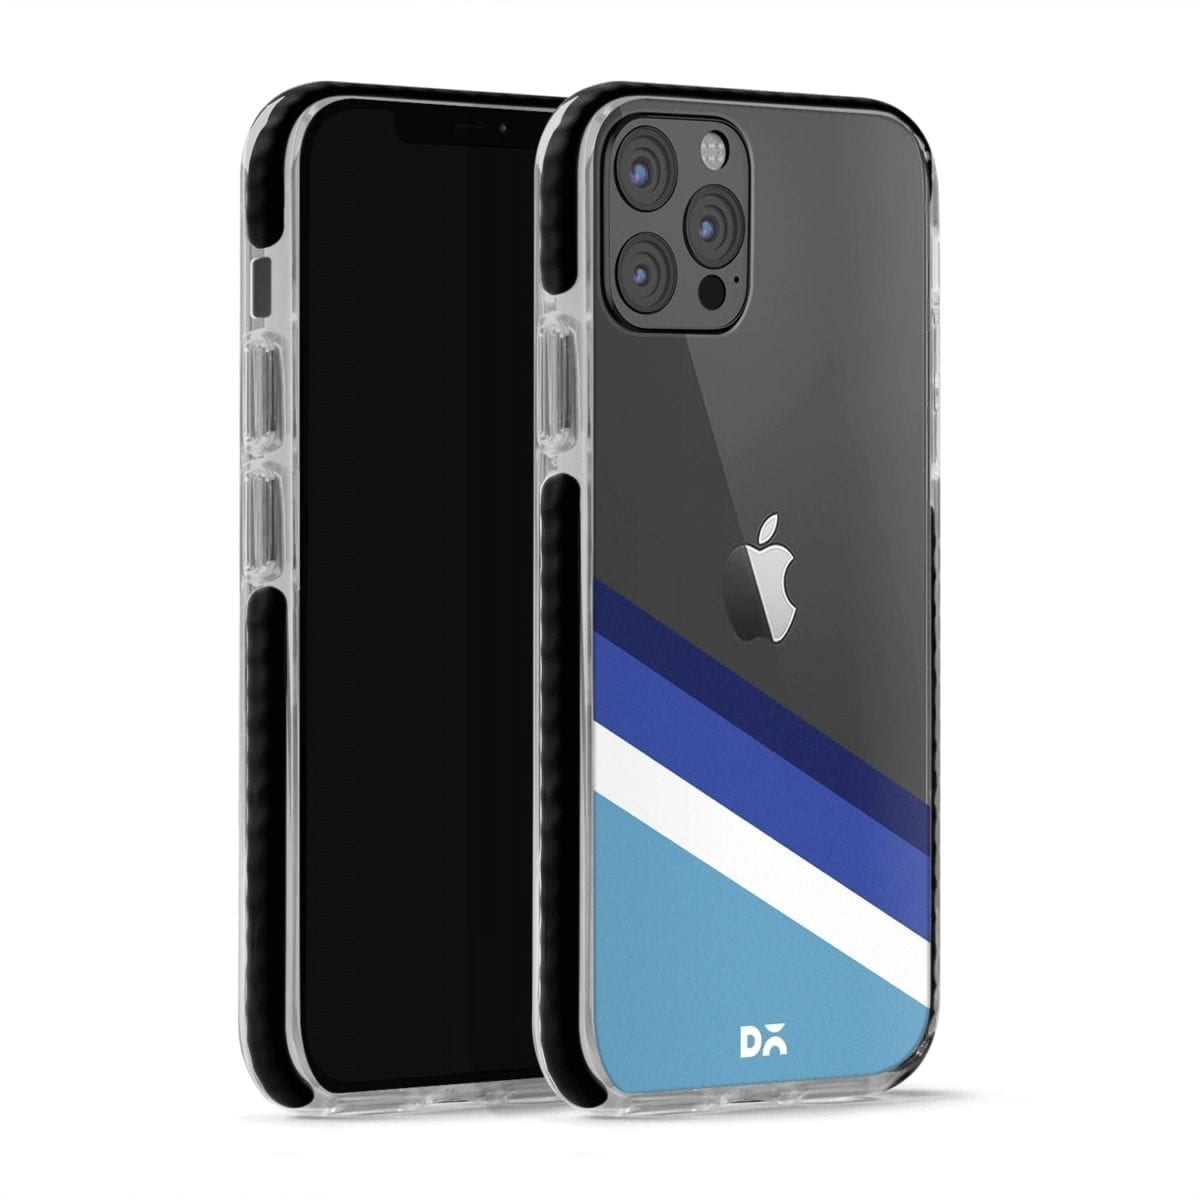 Aqua Angles Stride Case Cover for Apple iPhone 12 Pro and Apple iPhone 12 Pro Max with great design and shock proof | Klippik | Online Shopping | Kuwait UAE Saudi